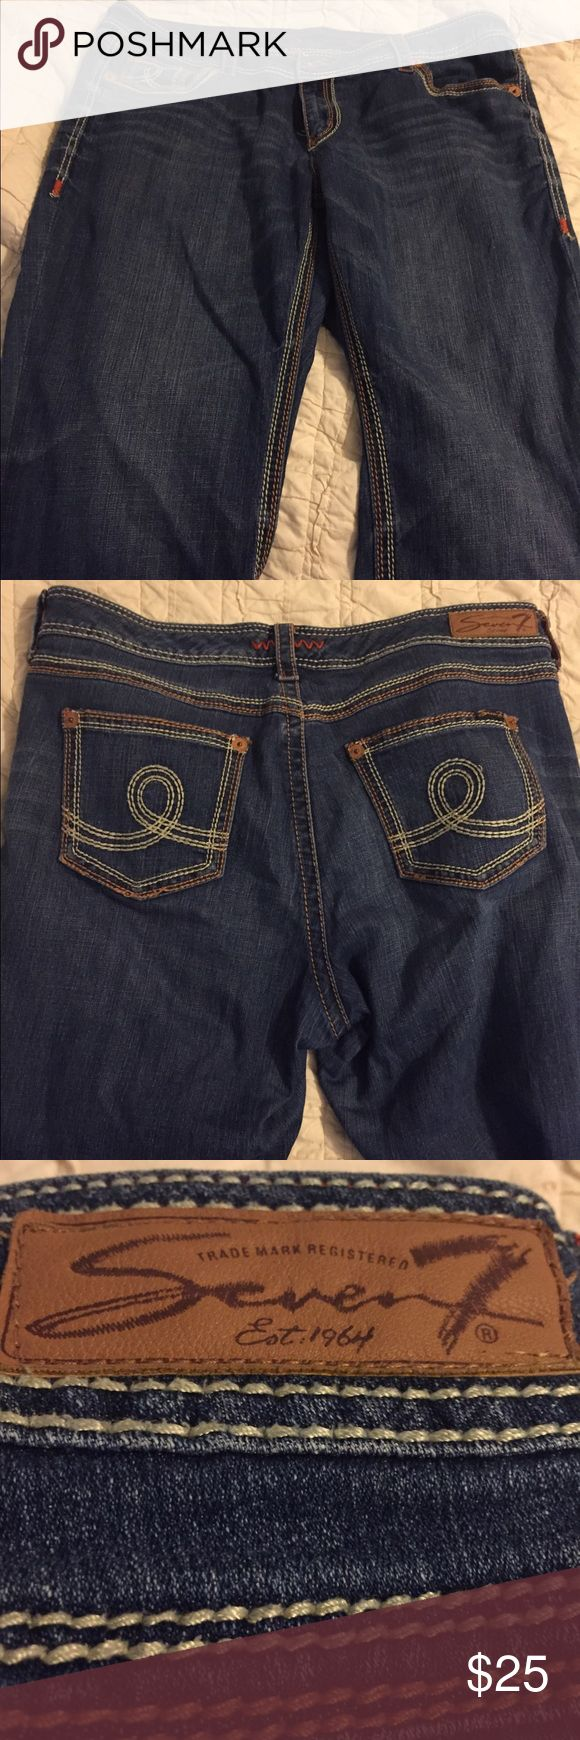 Seven7 women's petite jeans size 20 Size 20 petite in great used condition Seven7 Jeans Boot Cut